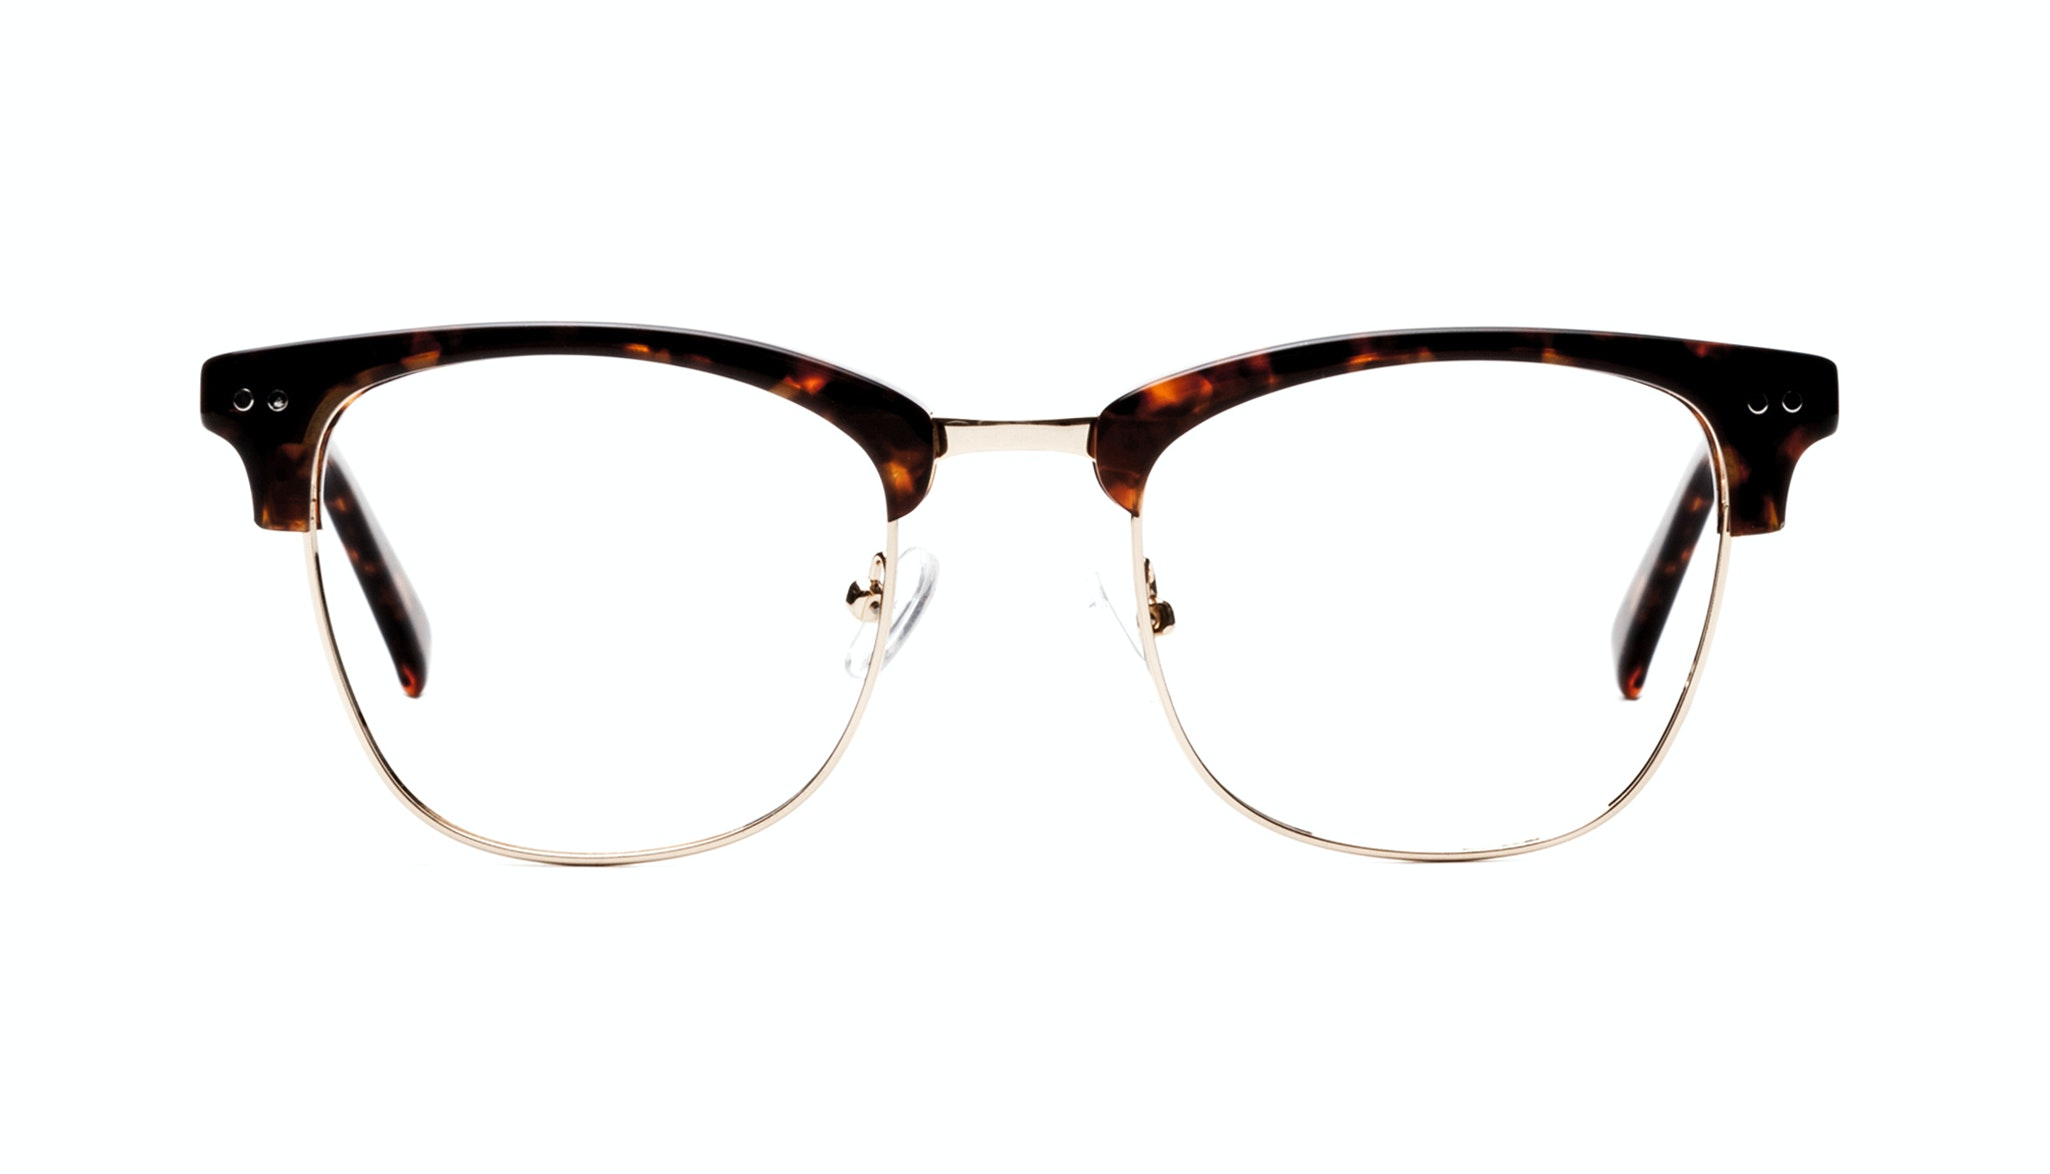 Affordable Fashion Glasses Square Eyeglasses Men Women Lift Gold Sepia